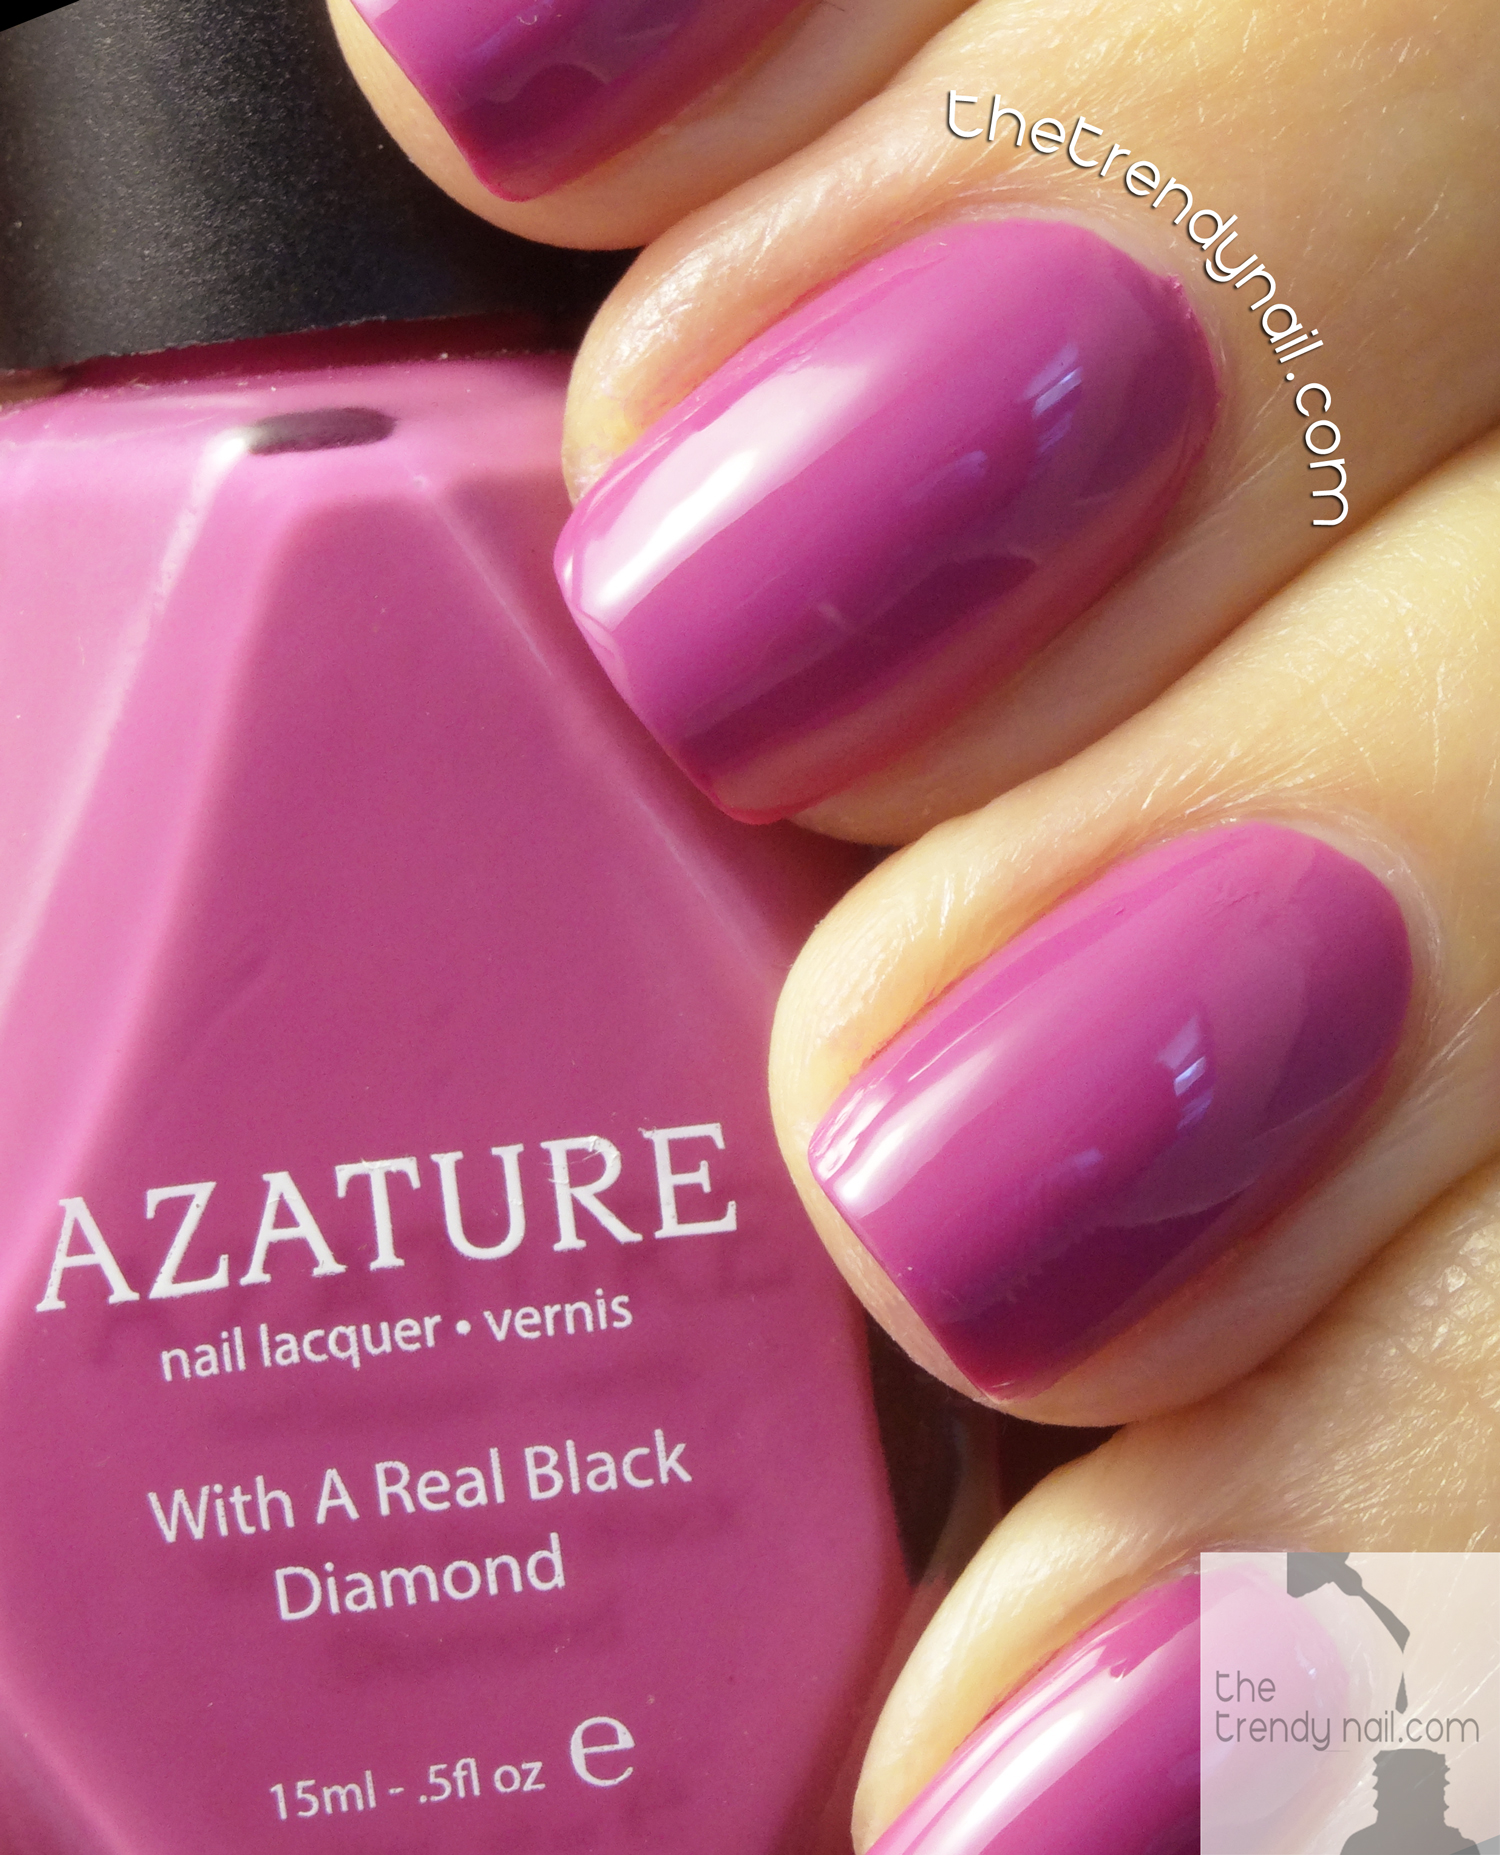 Azature-Lavender-As-Seen-On-The-Trendy-Nail